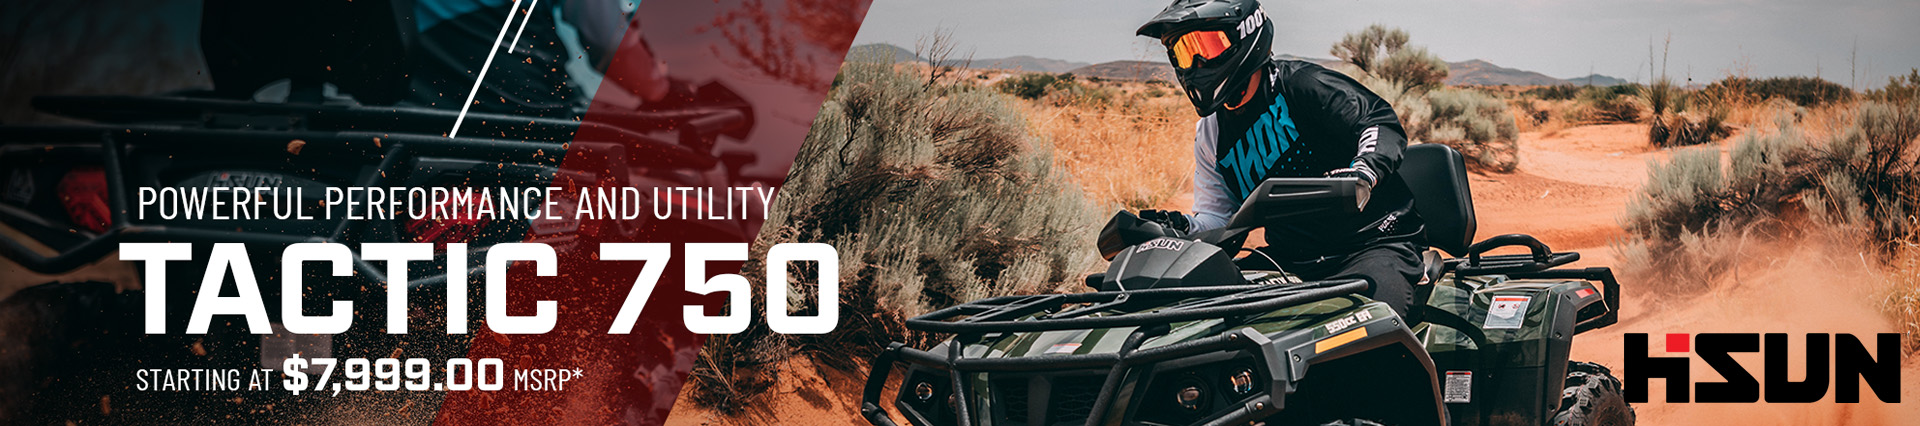 Champion Cycle Center - For All Your ATV & Motorcycle Needs   Suzuki